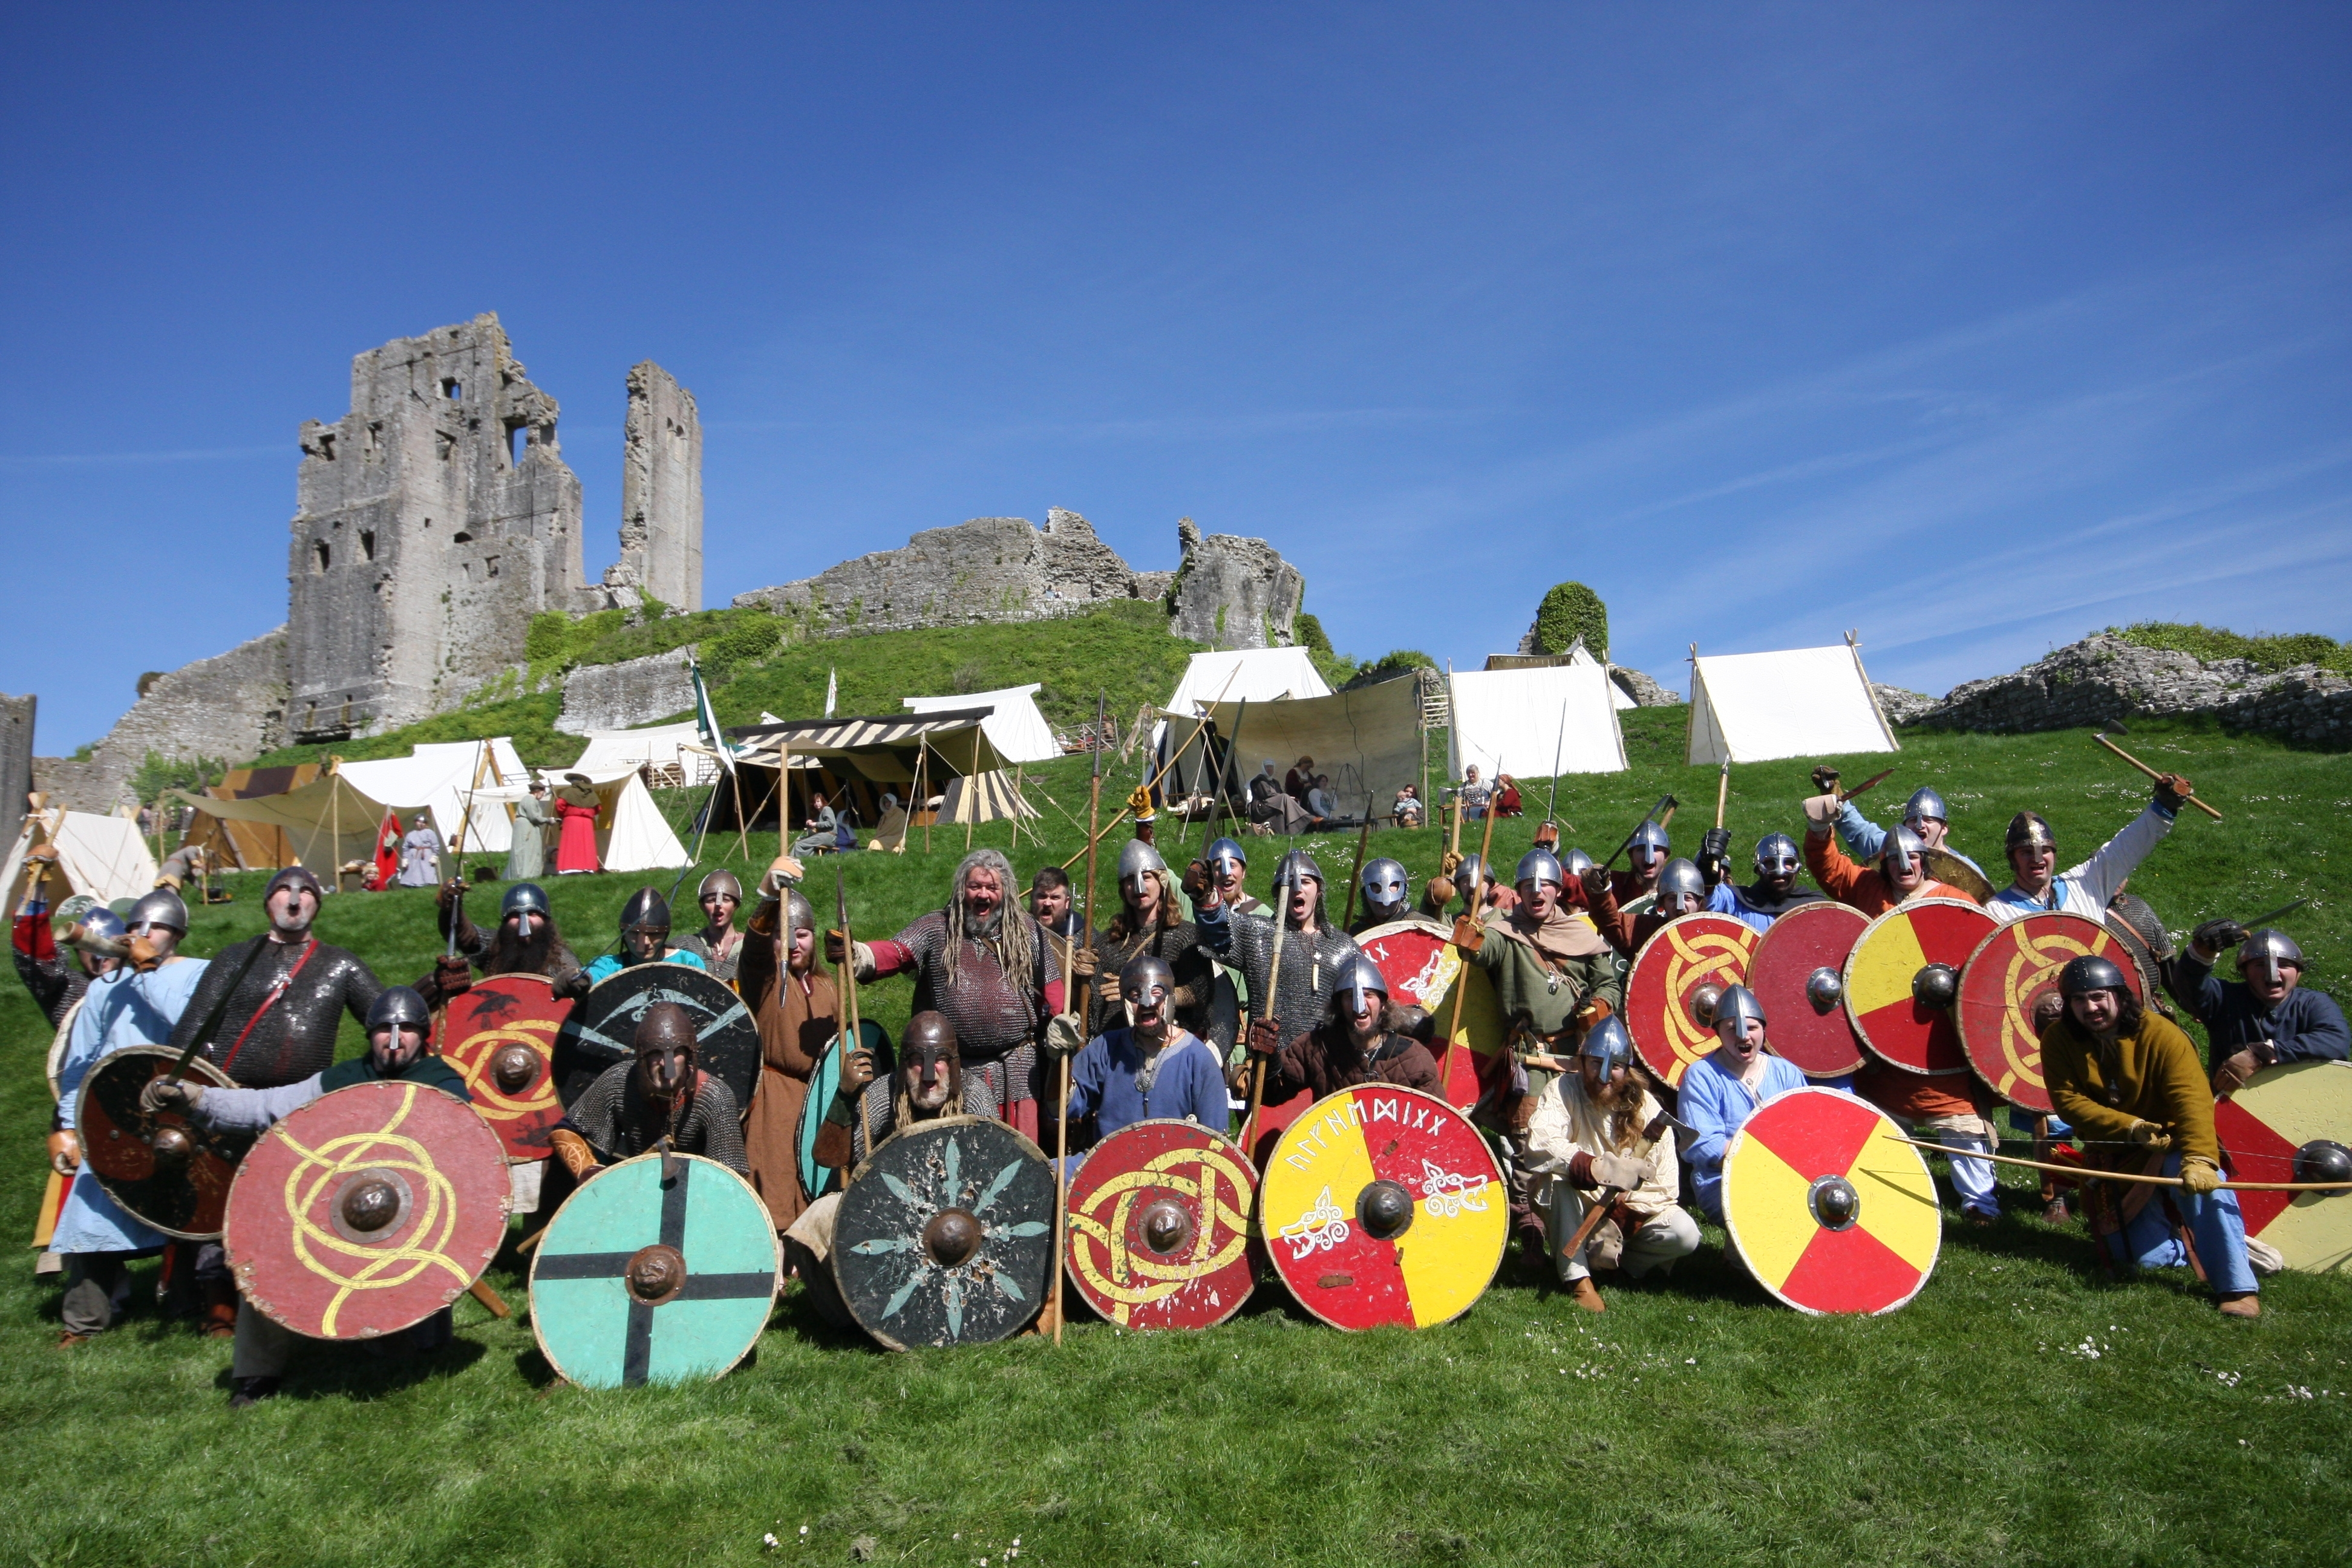 Cheering Vikings, in front of tents, Corfe Castle, and a brilliant blue sky